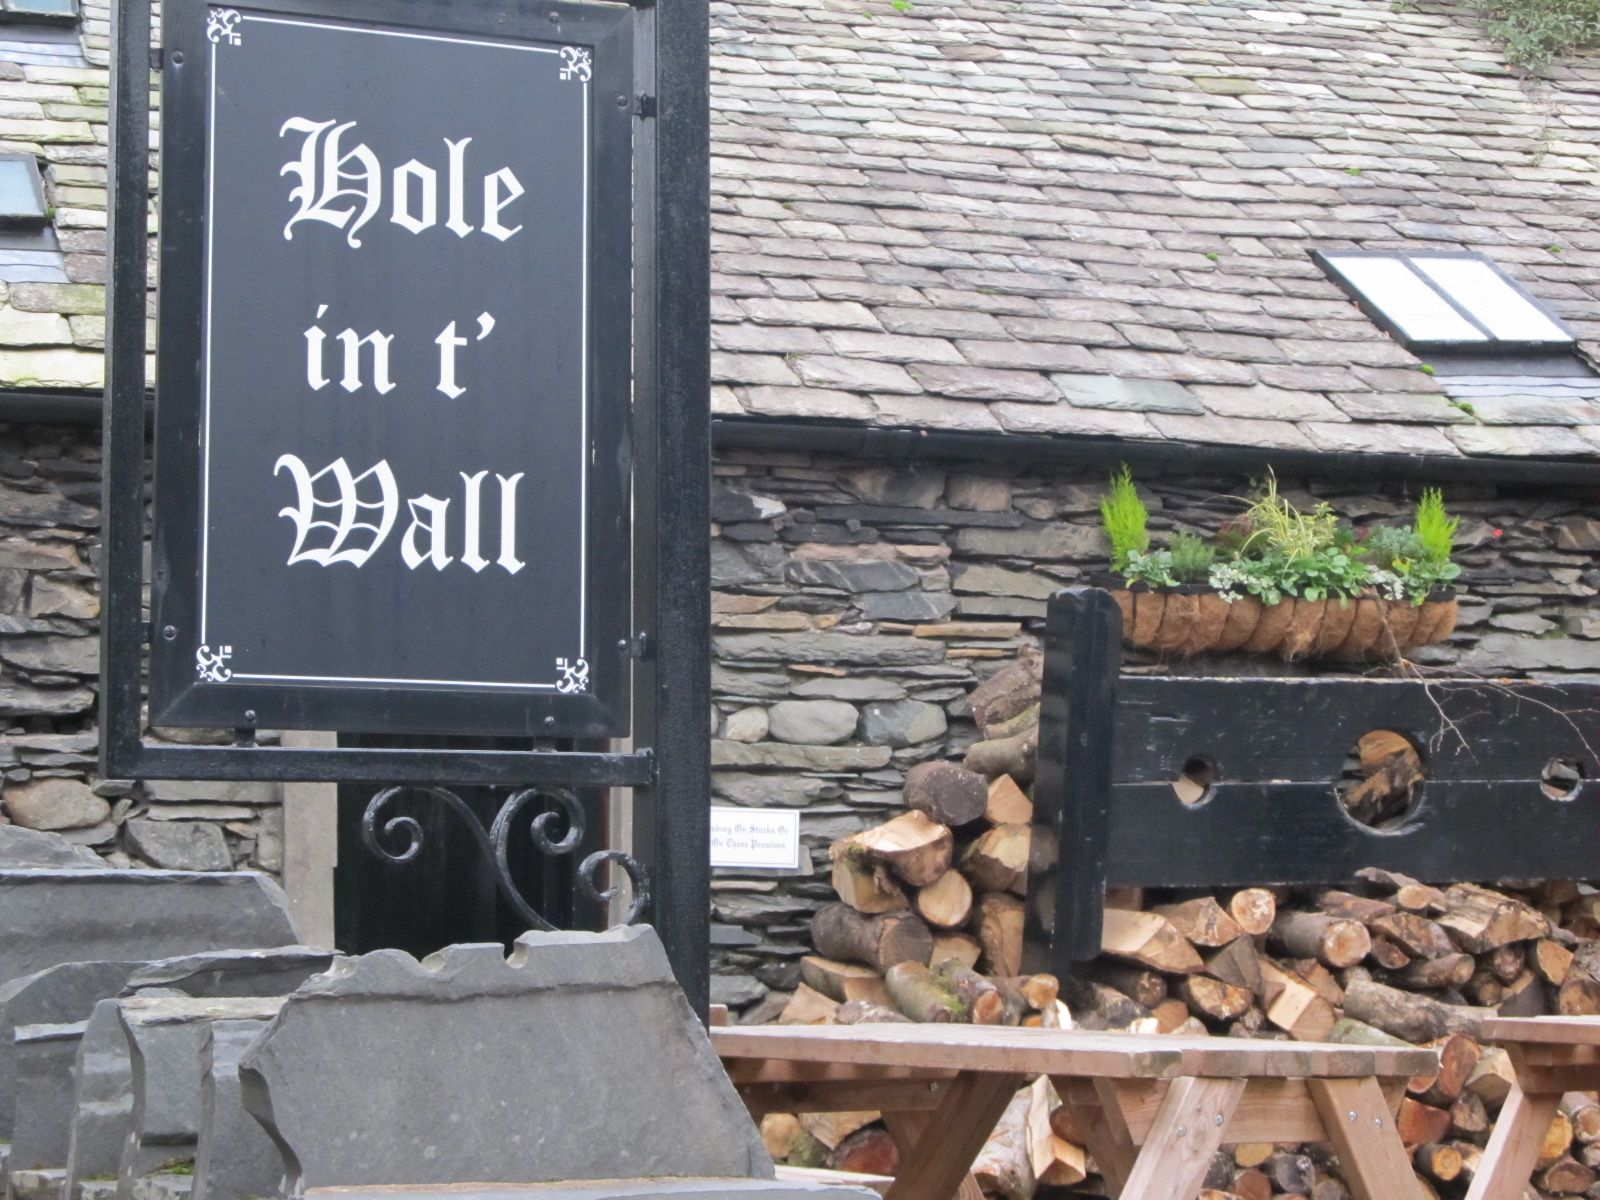 Hole in t' Wall